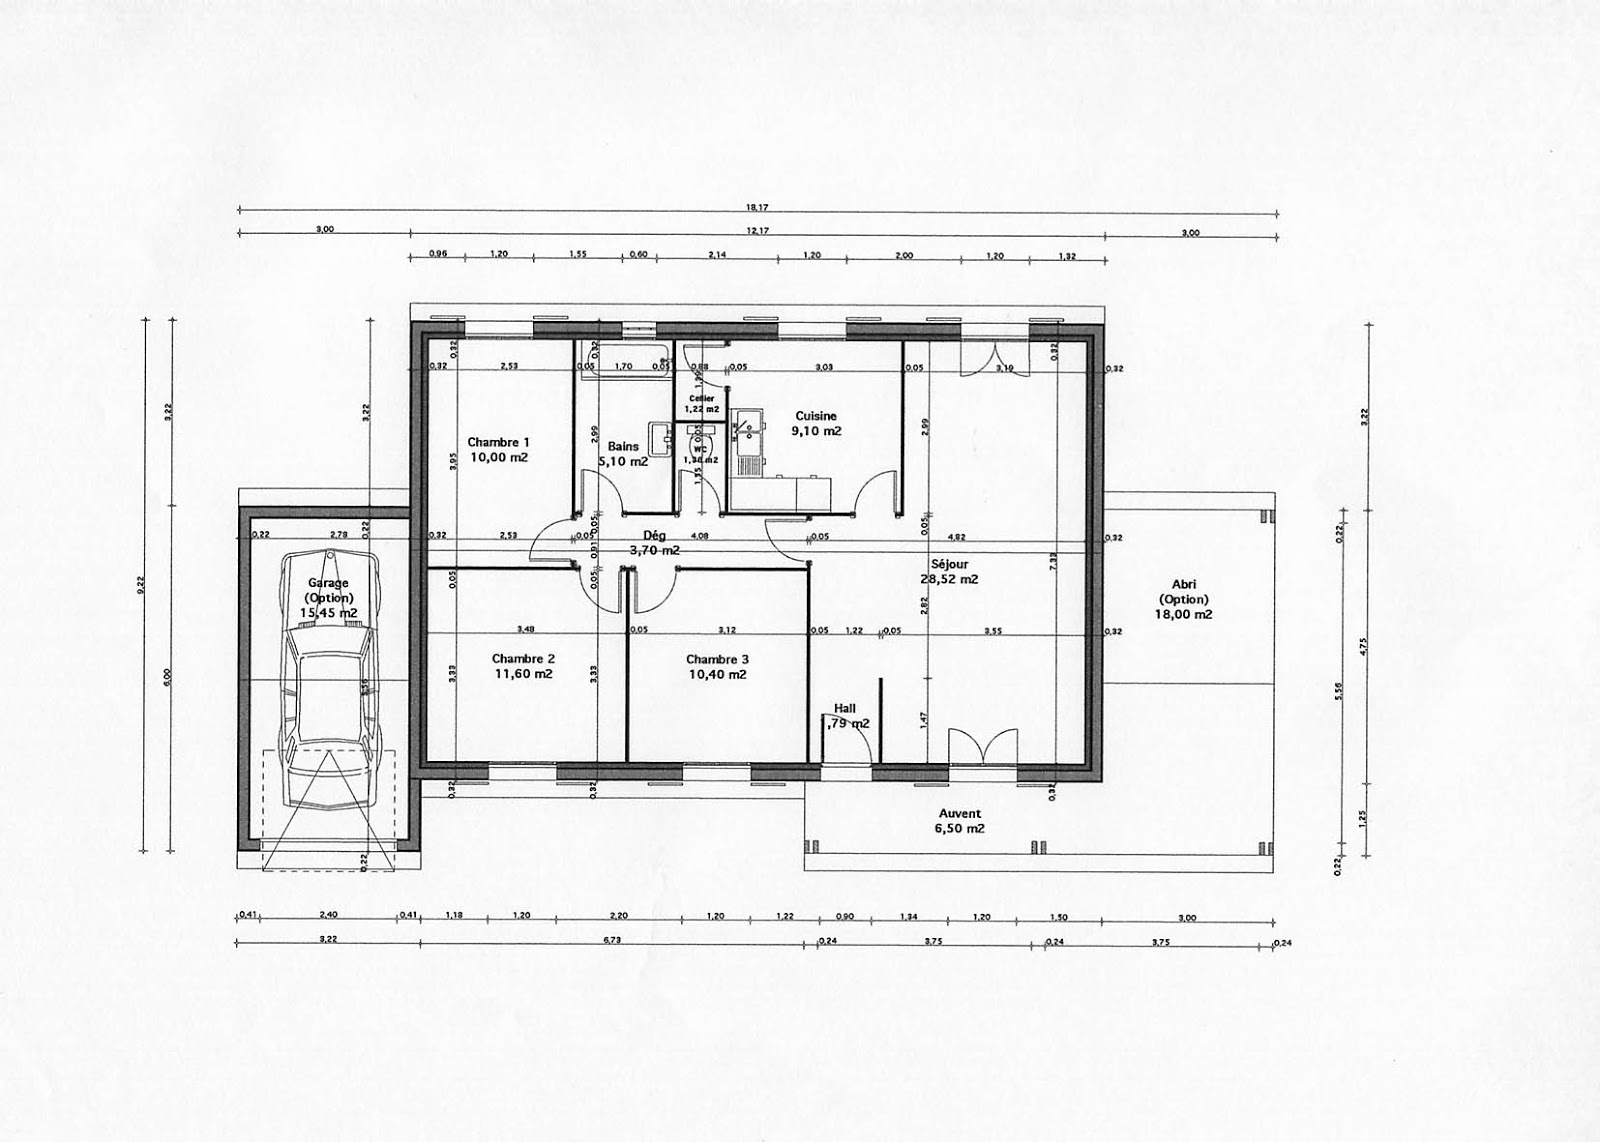 plan de maison contemporain